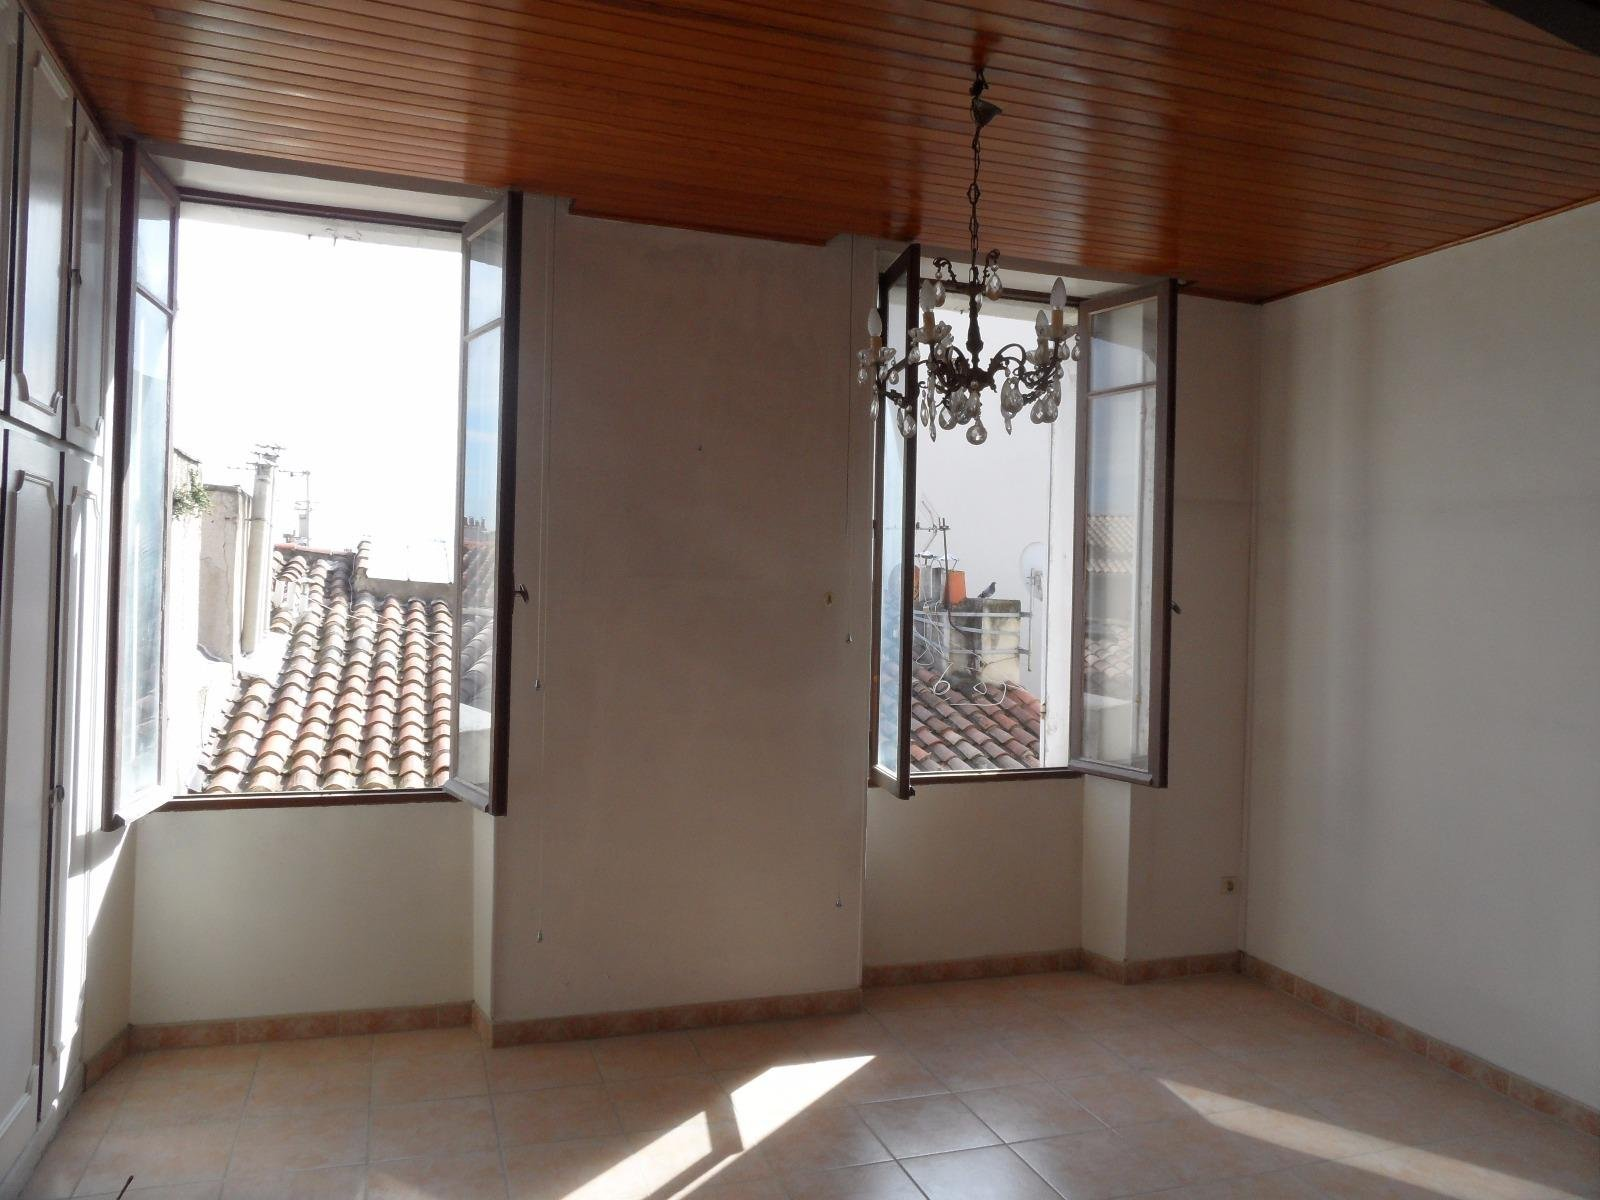 1 bedroom apartment 35m2